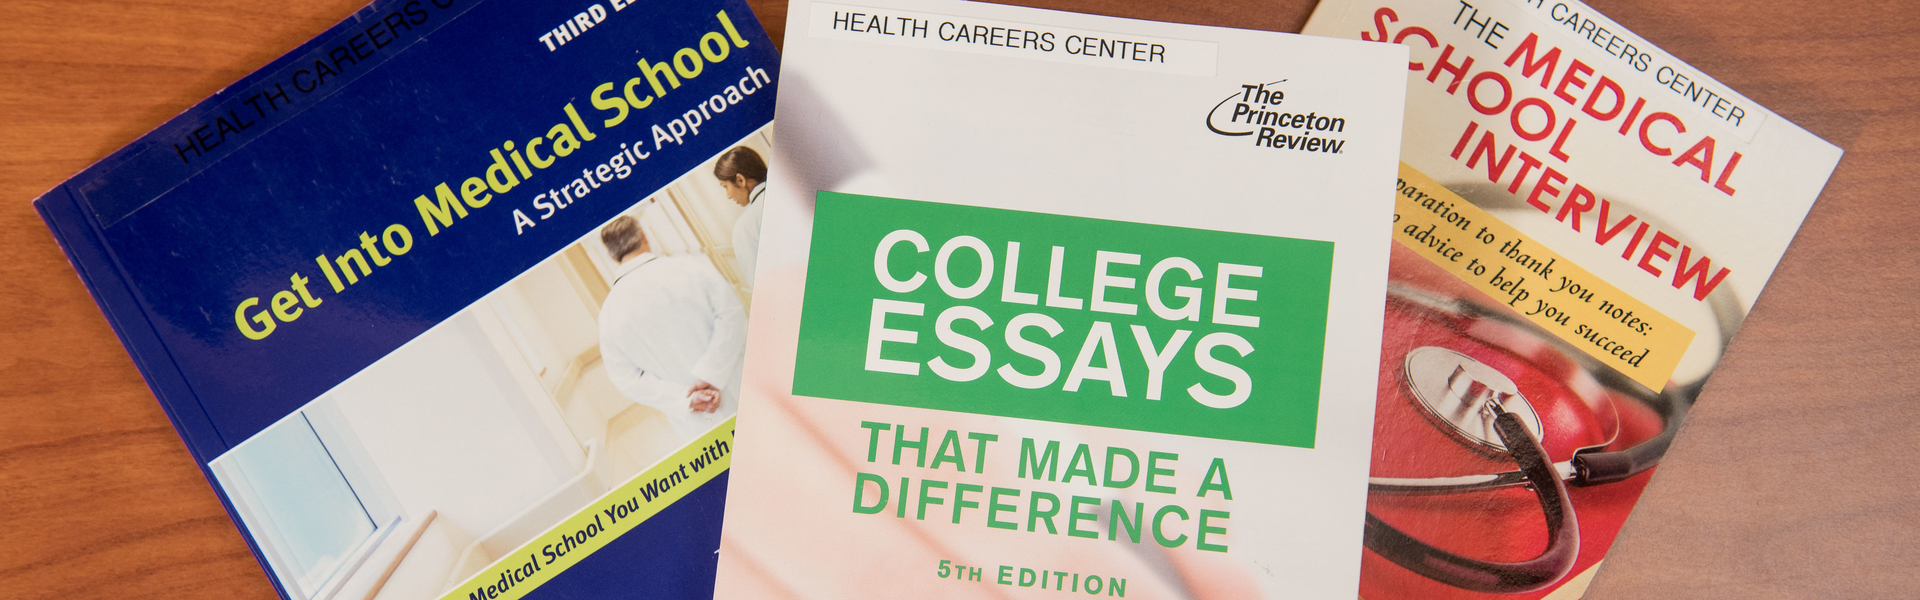 Health Careers Services reference books